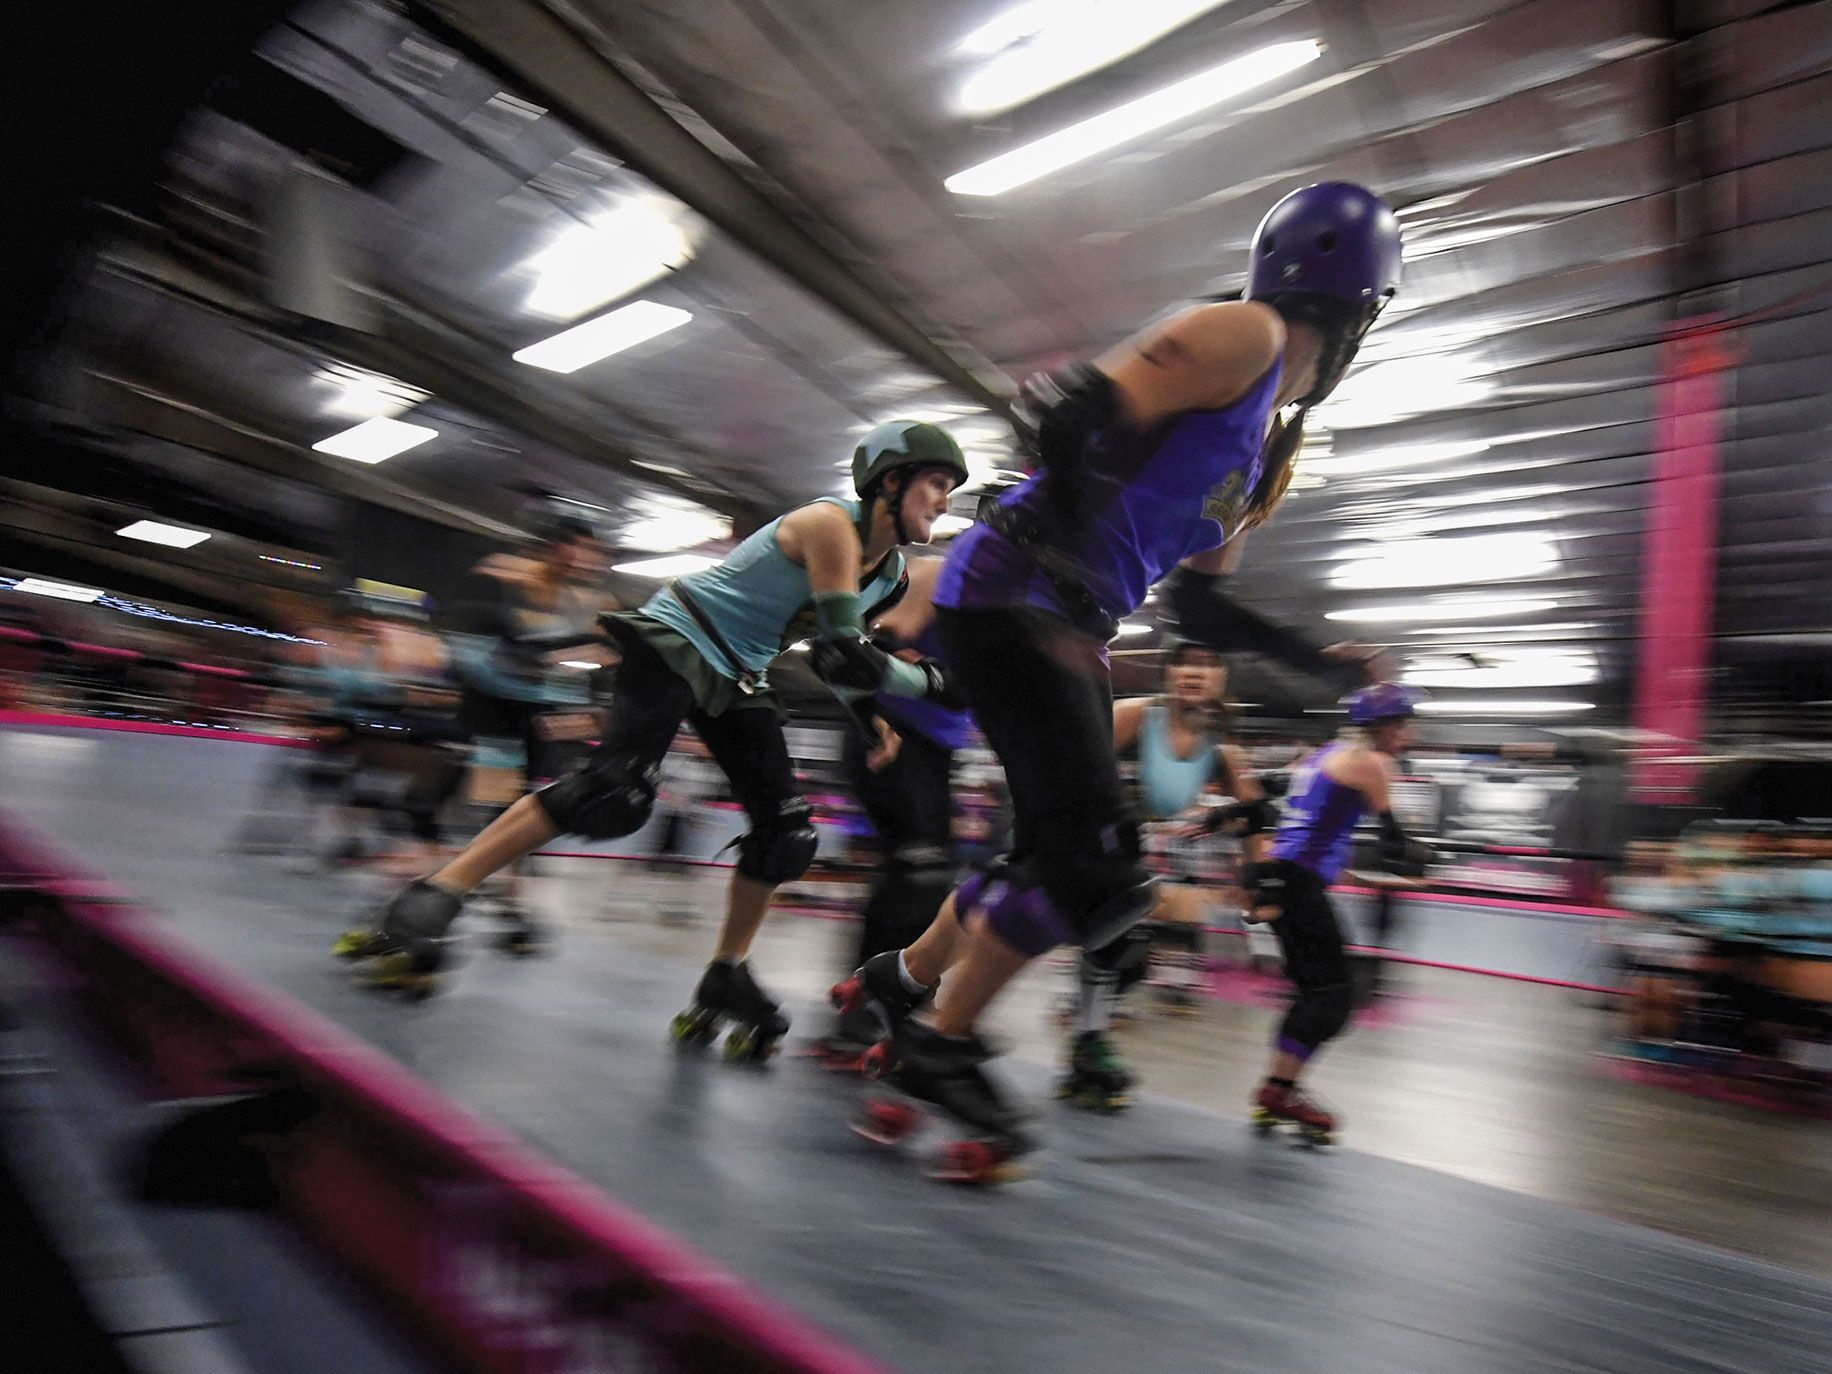 Members of the Varsity Brawlers team (purple tops) compete against the Tough Cookies team during a L.A. Derby Dolls women's banked track roller derby event in Los Angeles.